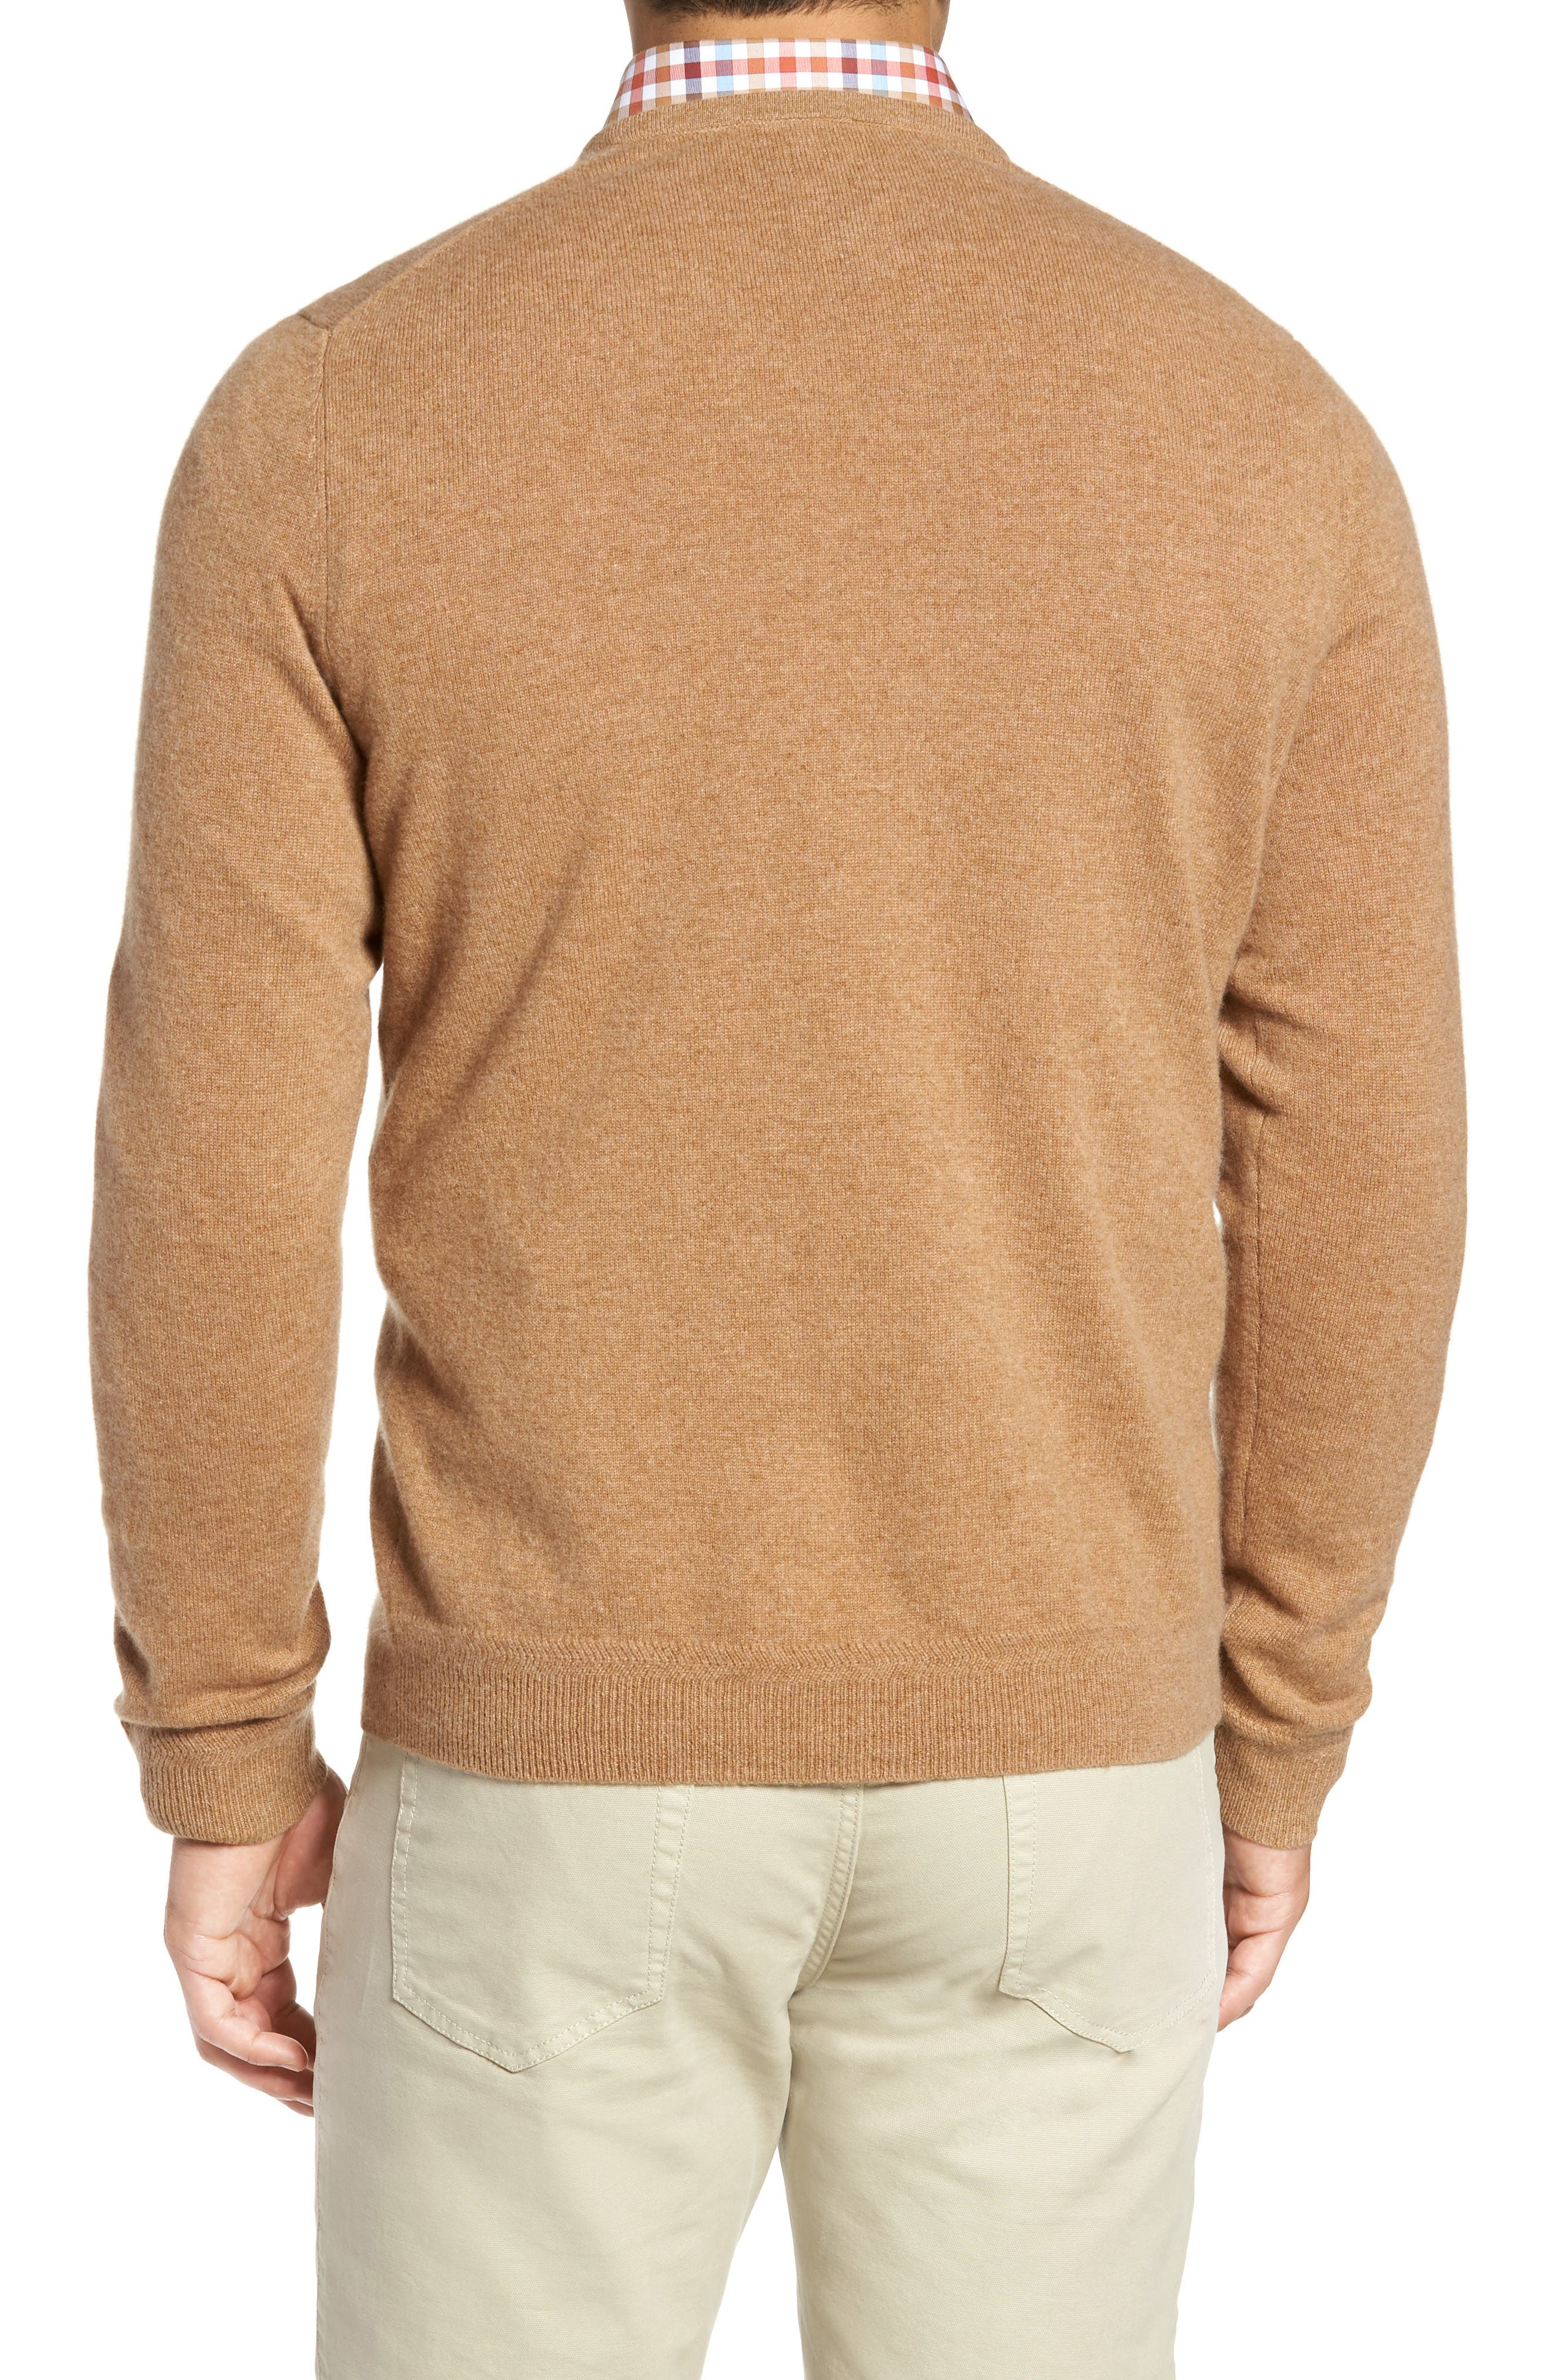 John W. Nordstrom Cashmere V-Neck Sweater,                             Alternate thumbnail 2, color,                             Brown Bear